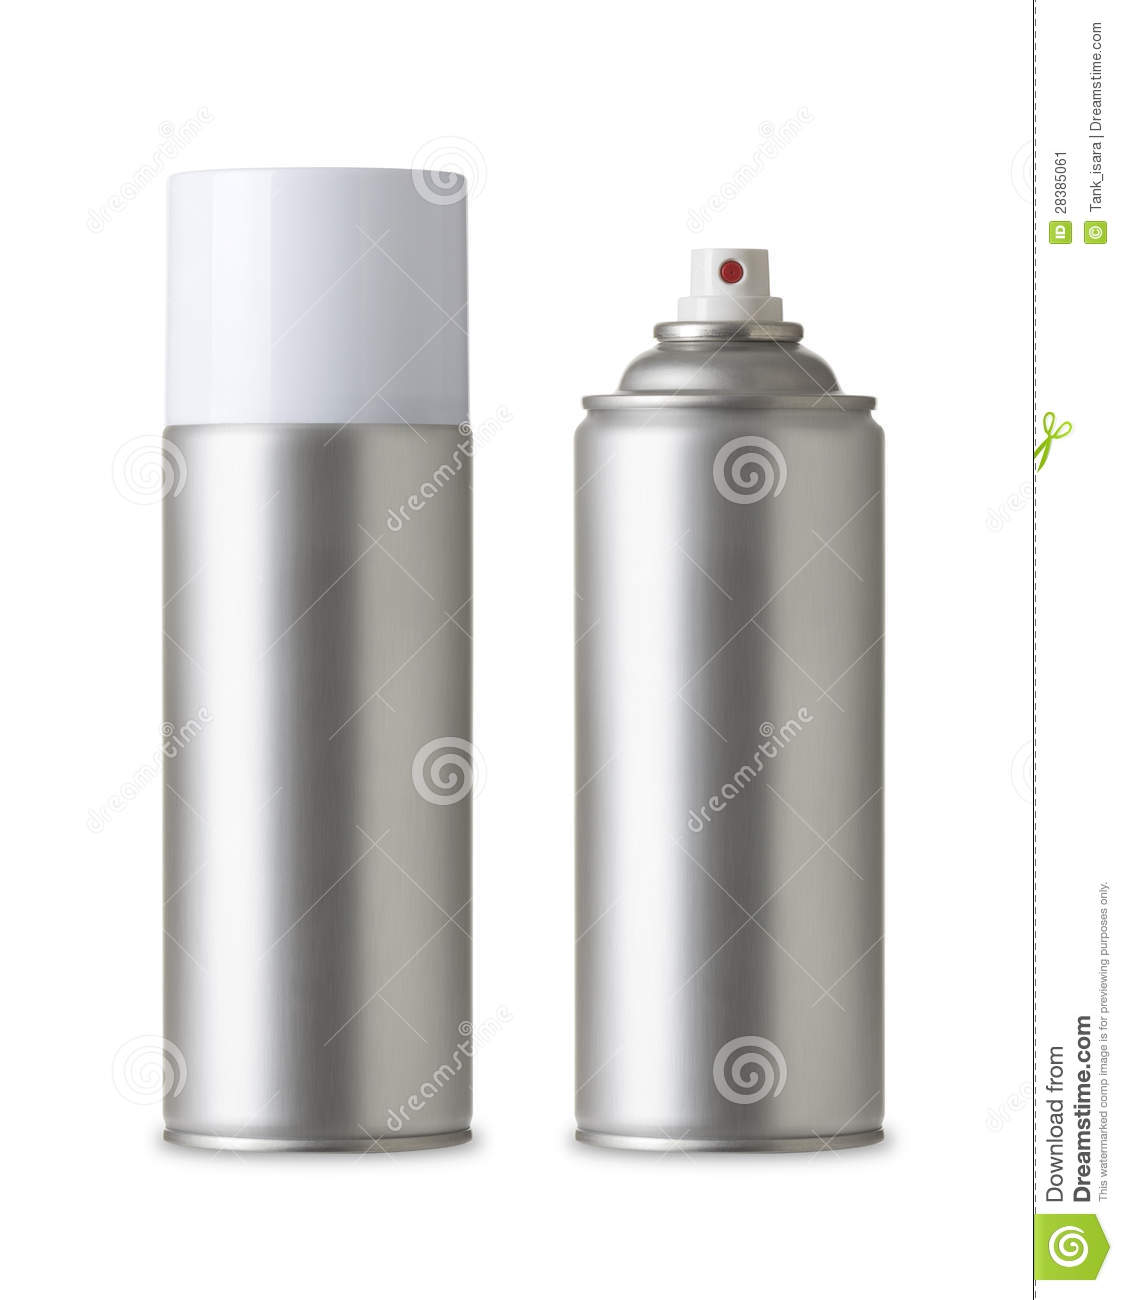 Blank Aluminum Spray Paint Can Realistic Photo Image